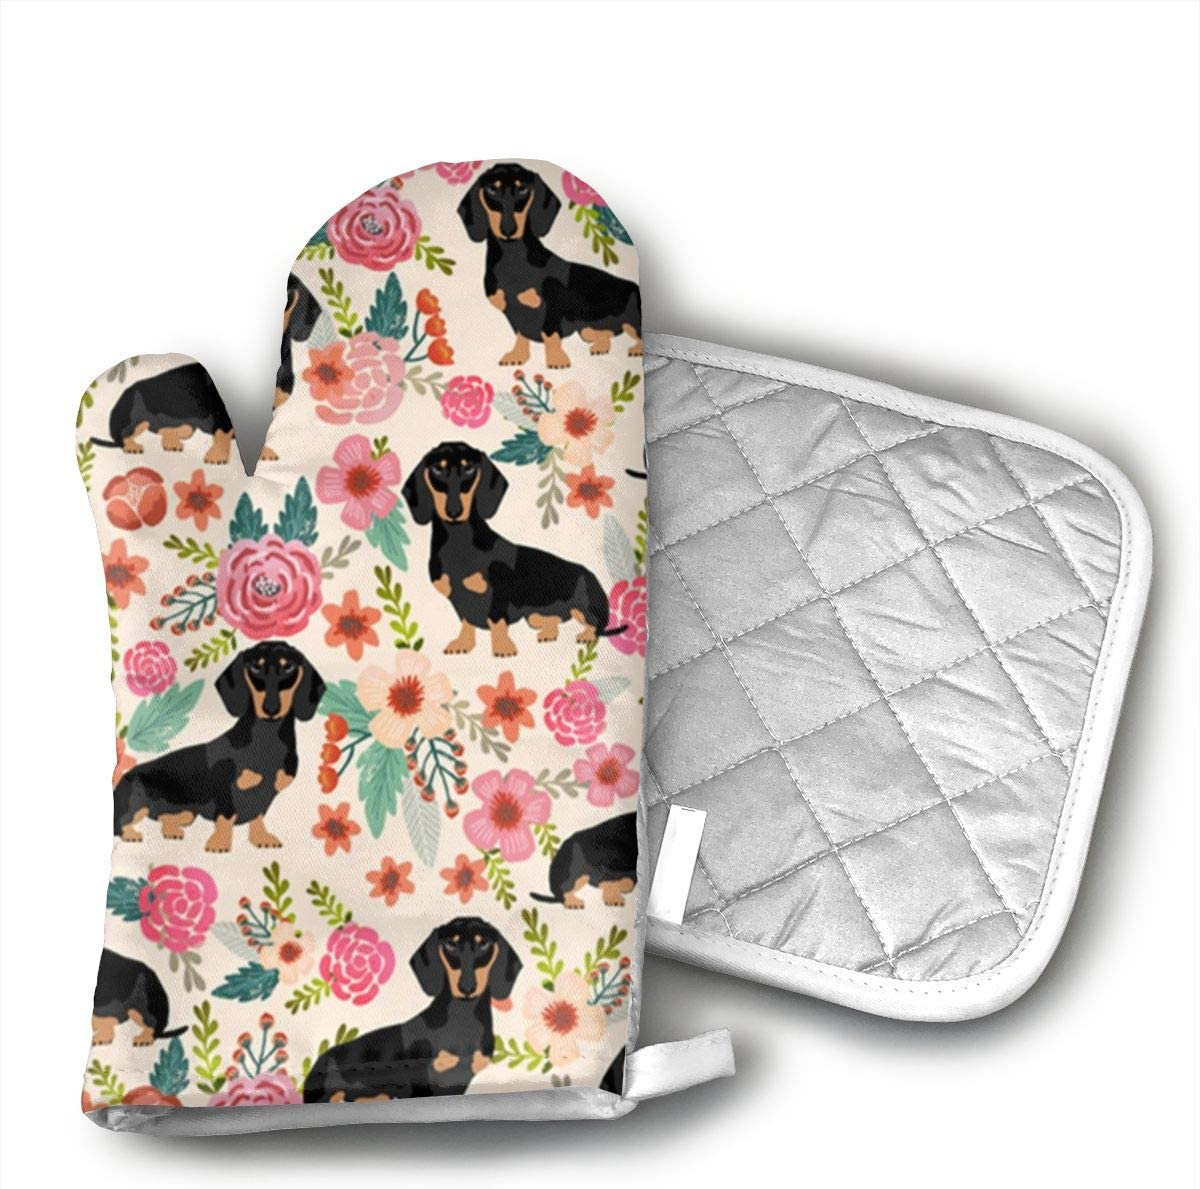 UYRHFS Wiener Dog Oven Mitts and Pot Holder Kitchen Set with, Heat Resistant, Oven Gloves and Pot Holders 2pcs Set for BBQ Cooking Baking